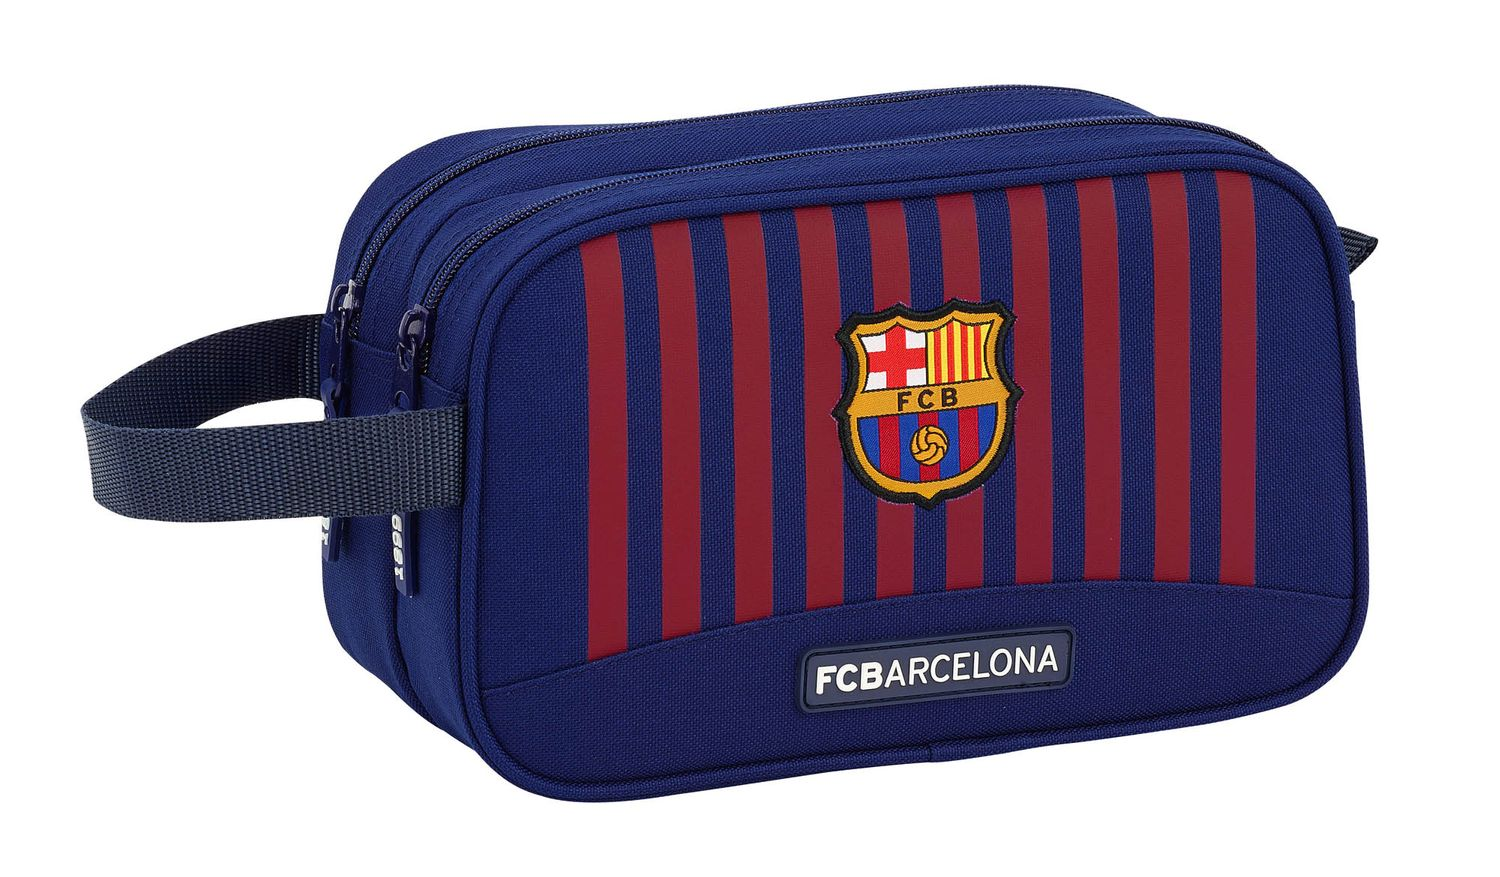 FC Barcelona Wash Travel Bag Double – image 1